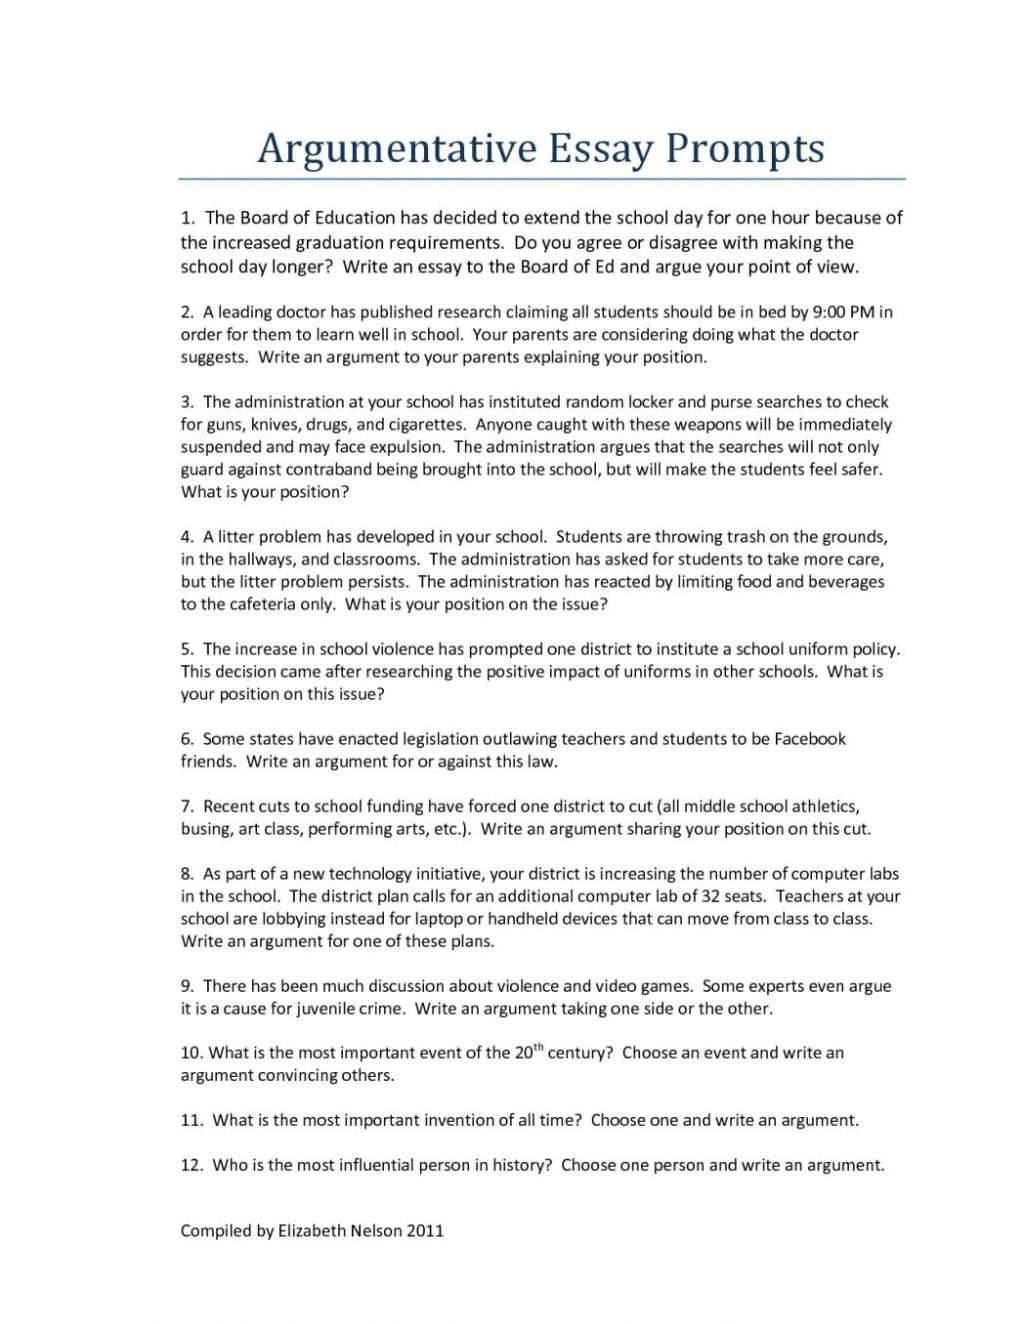 025 Persuasive Essay Topics For College Writings And Essays Interesting To Write An Argumentative On Of Onwe Bioinnovate Co In Great Paper Funny Easiest Topic Easy Good 1048x1356 About Formidable Art Related Artificial Intelligence Philosophy Performing Arts Large